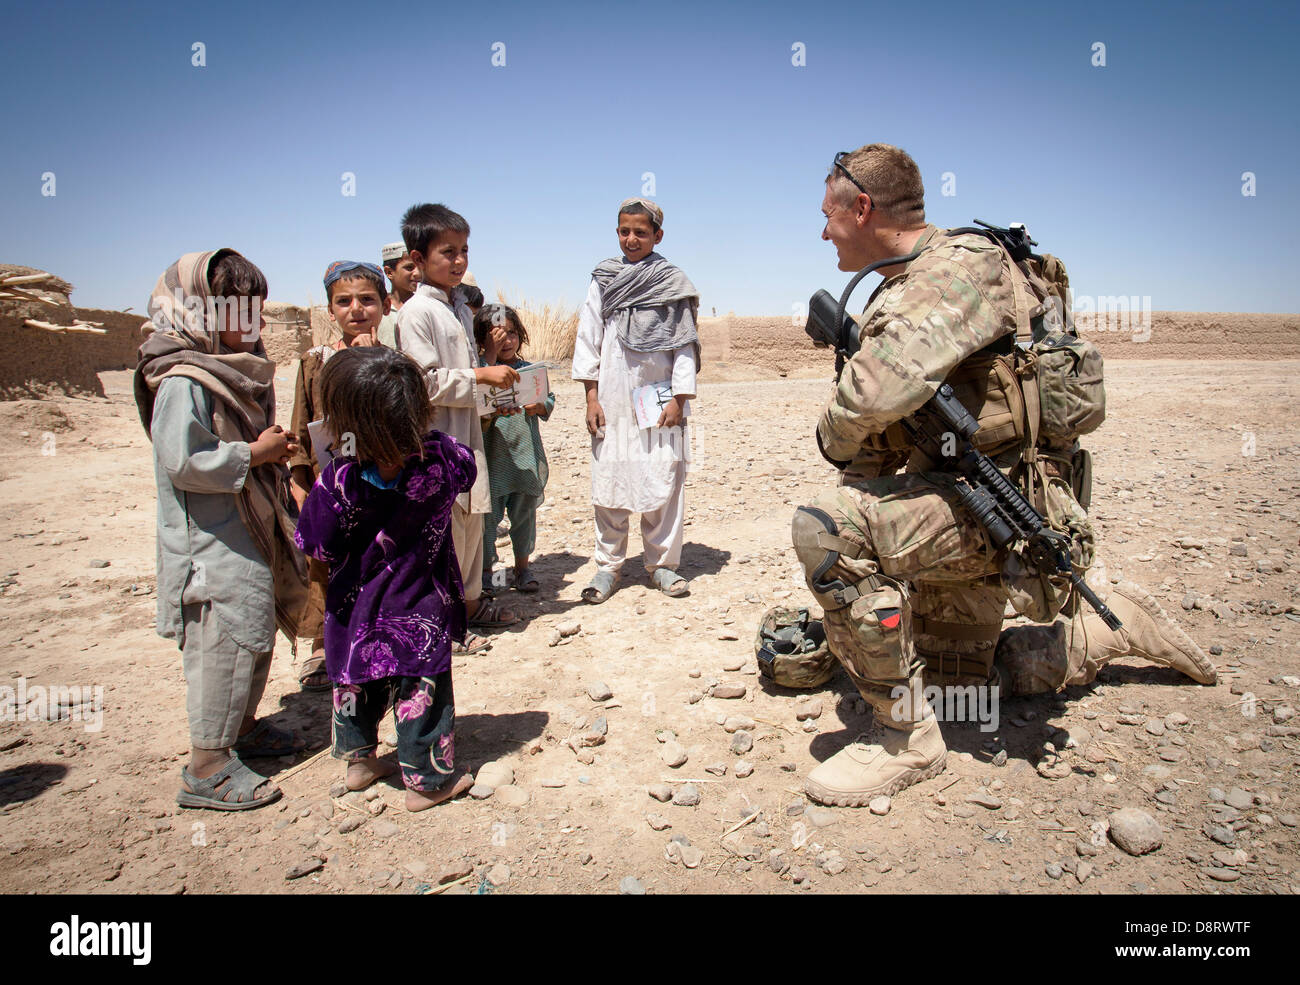 US Army Staff Sgt. Matthew Parsons with the Police Adviser Team Delaram talks with Afghan children May 26, 2013 - Stock Image